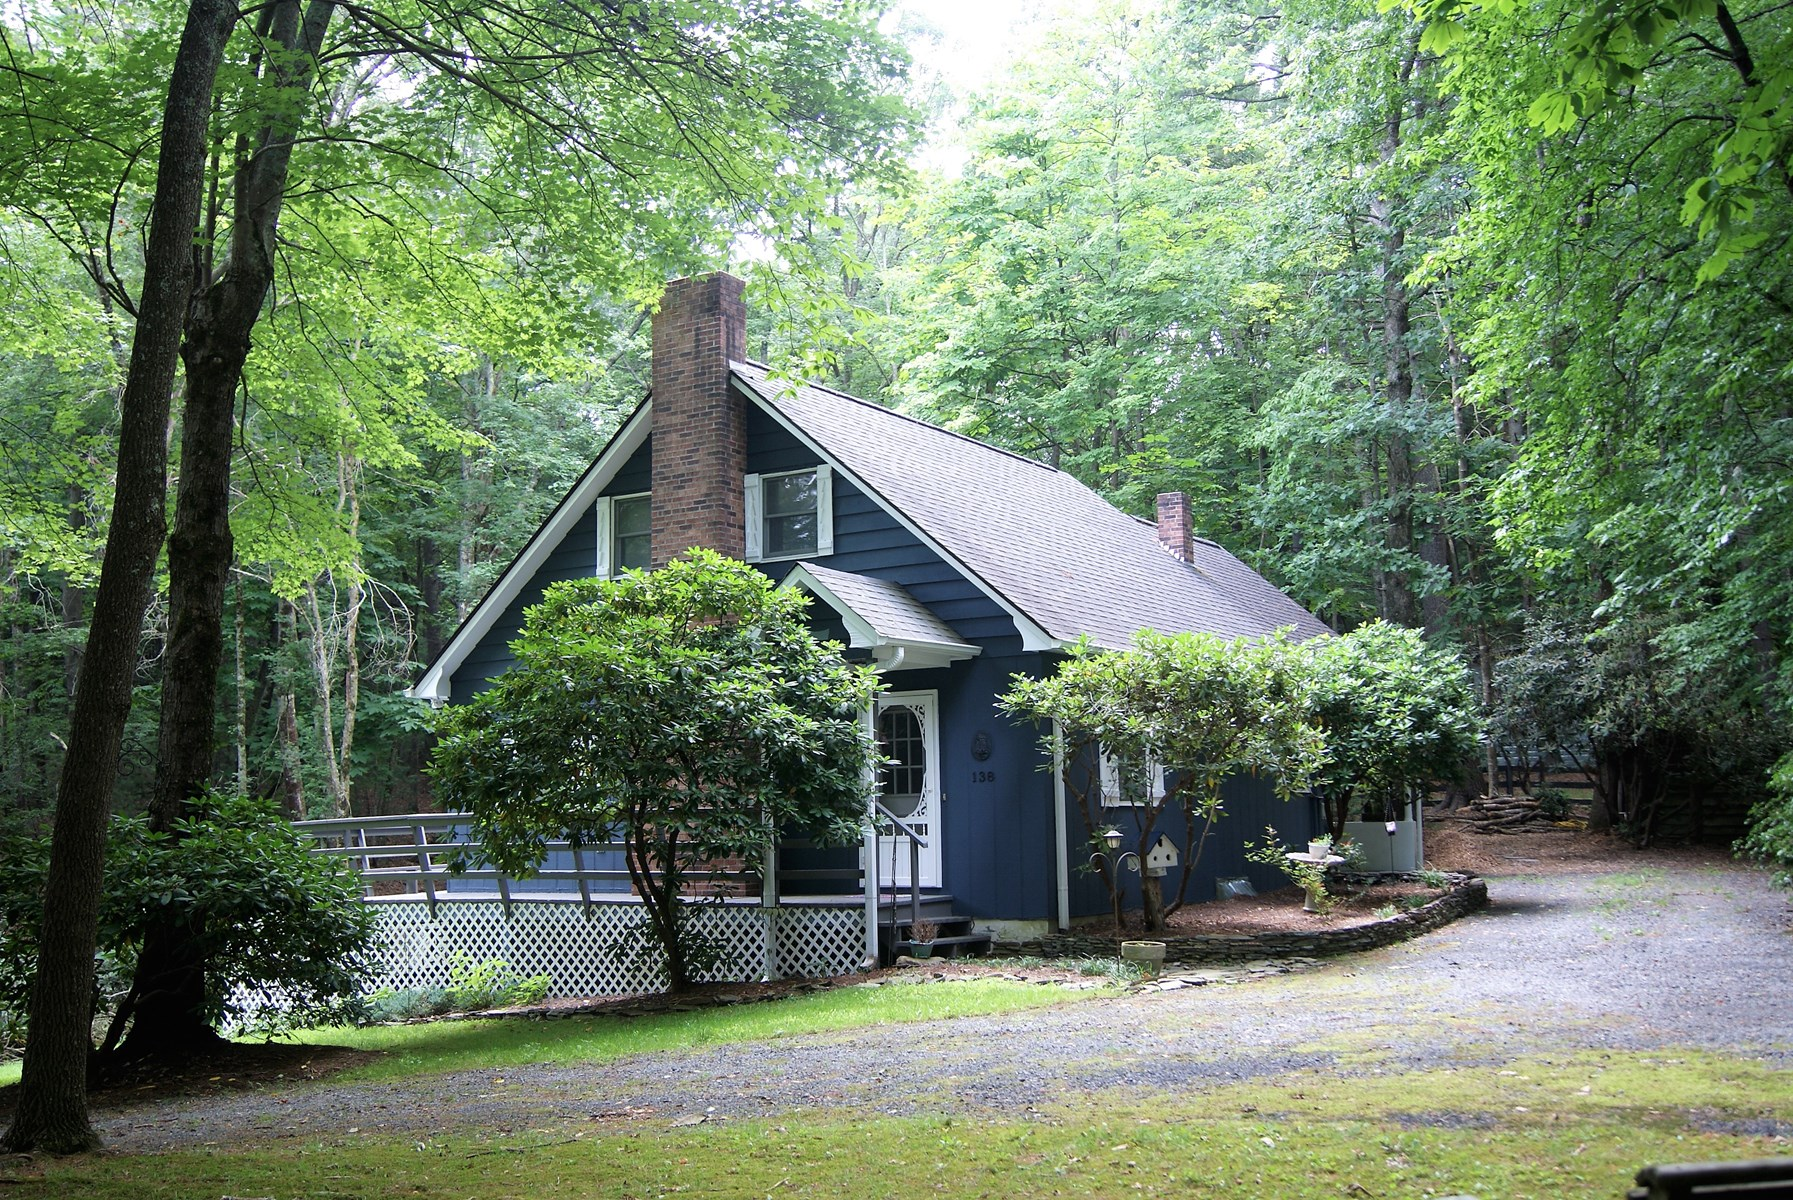 Adorable Move-In Ready Mountain Home in Roaring Gap NC